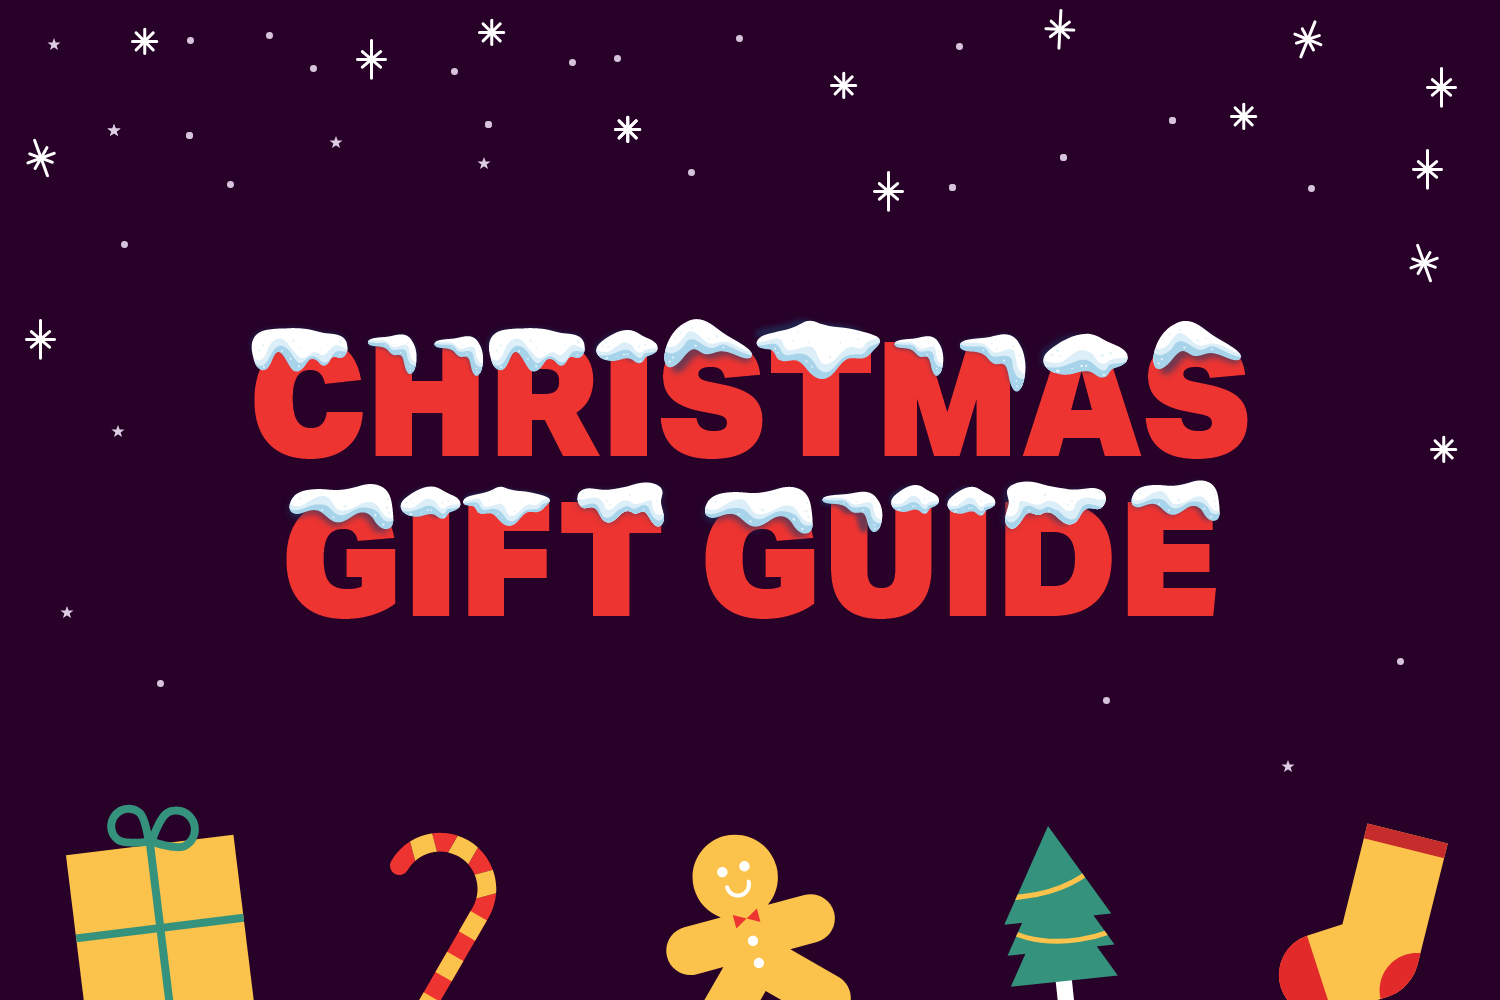 Your Christmas gift guide is here!